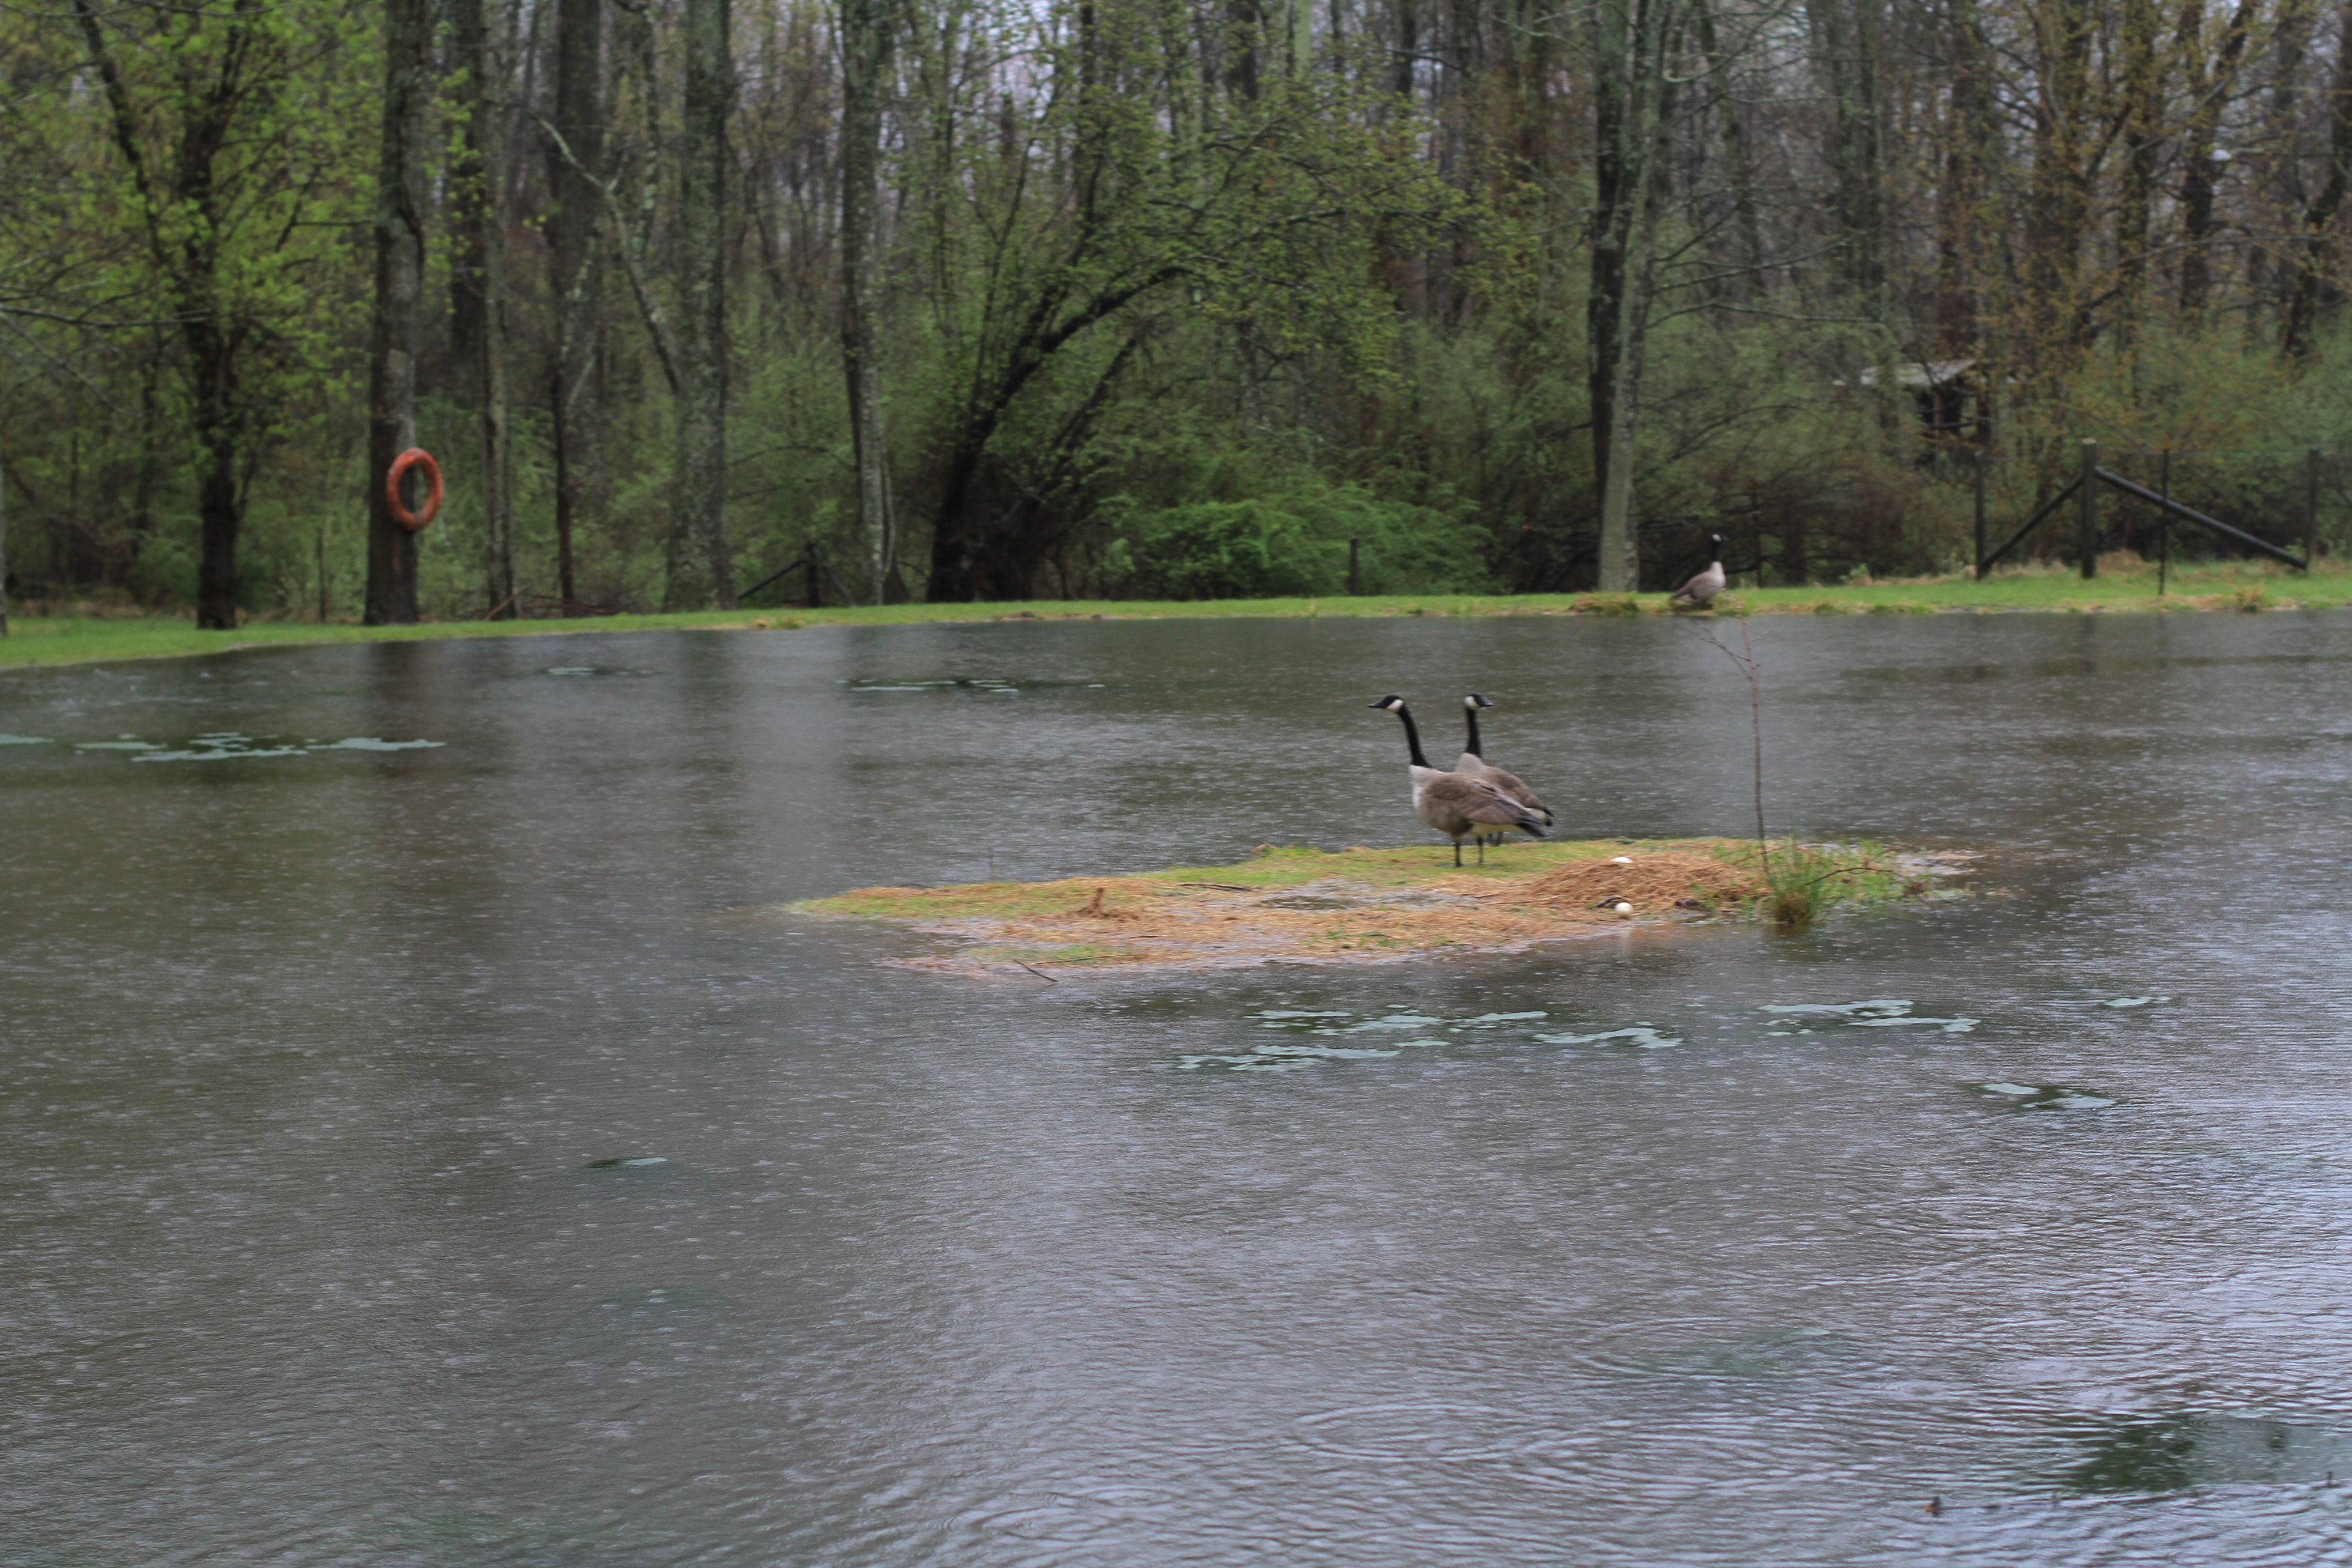 Geese on island in flooded pond